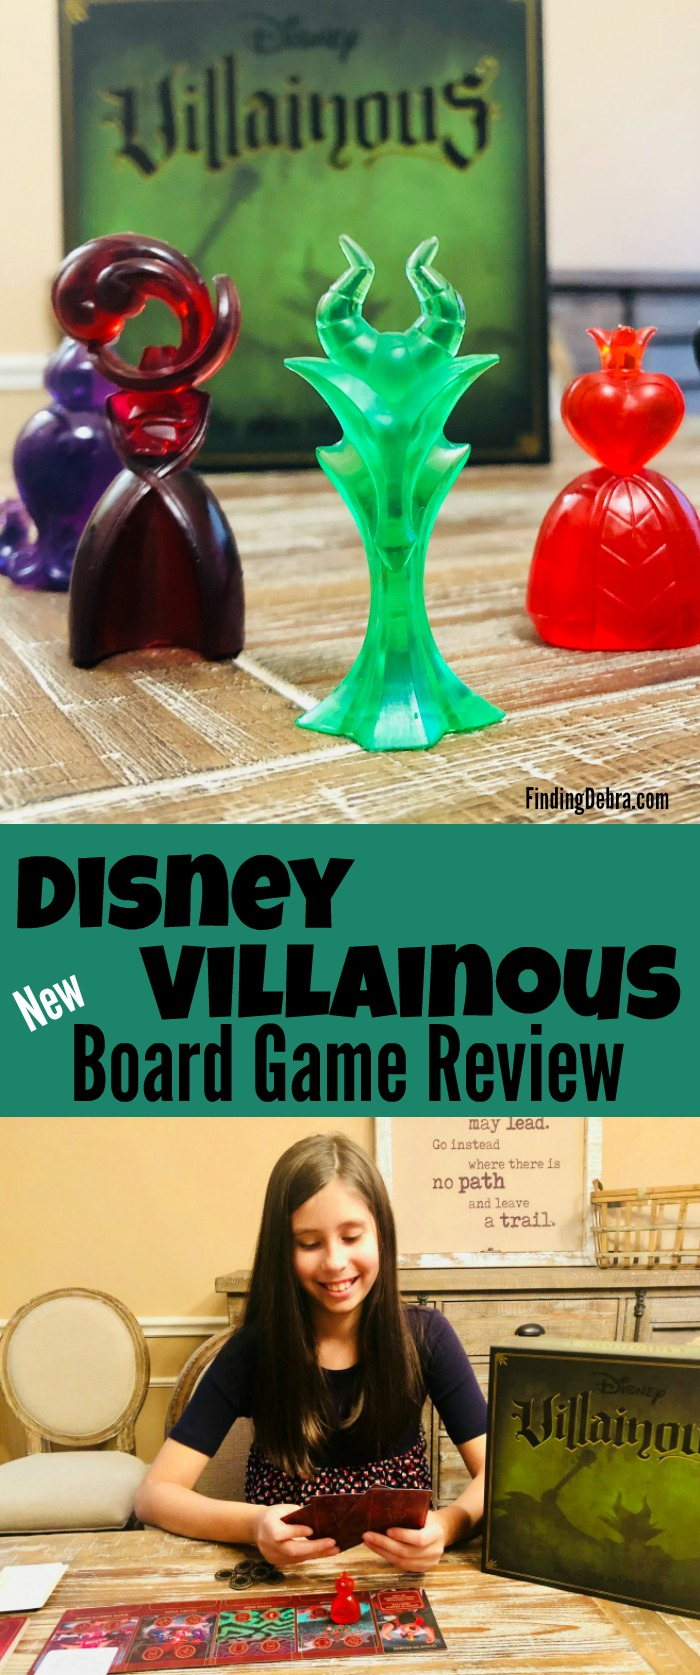 Disney Villainous Board Game Review